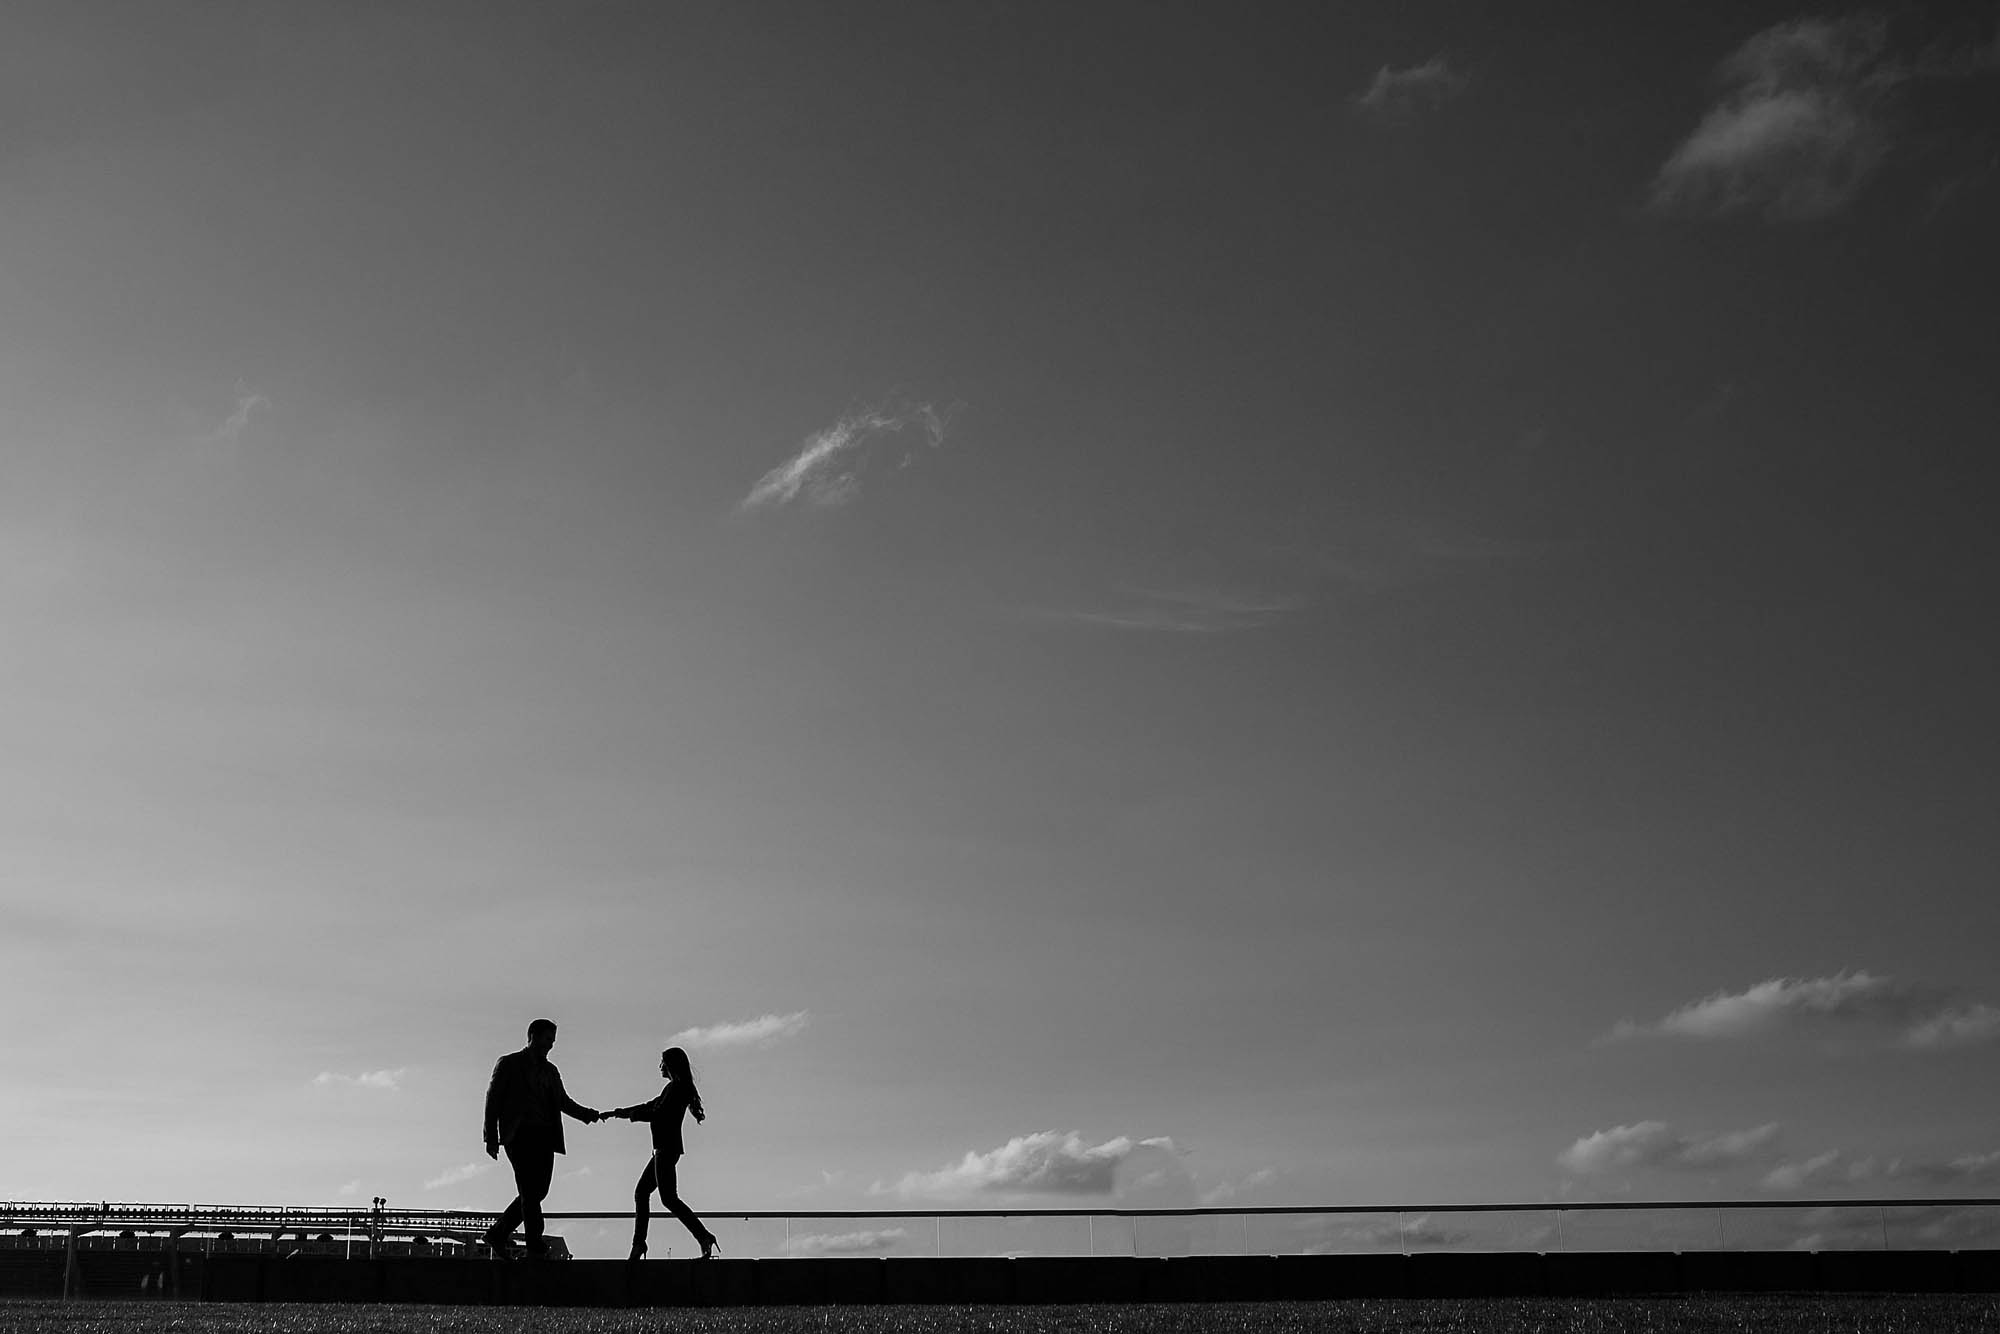 Black and white silhouette of a couple walking hand in hand against the sky in Cleveland.